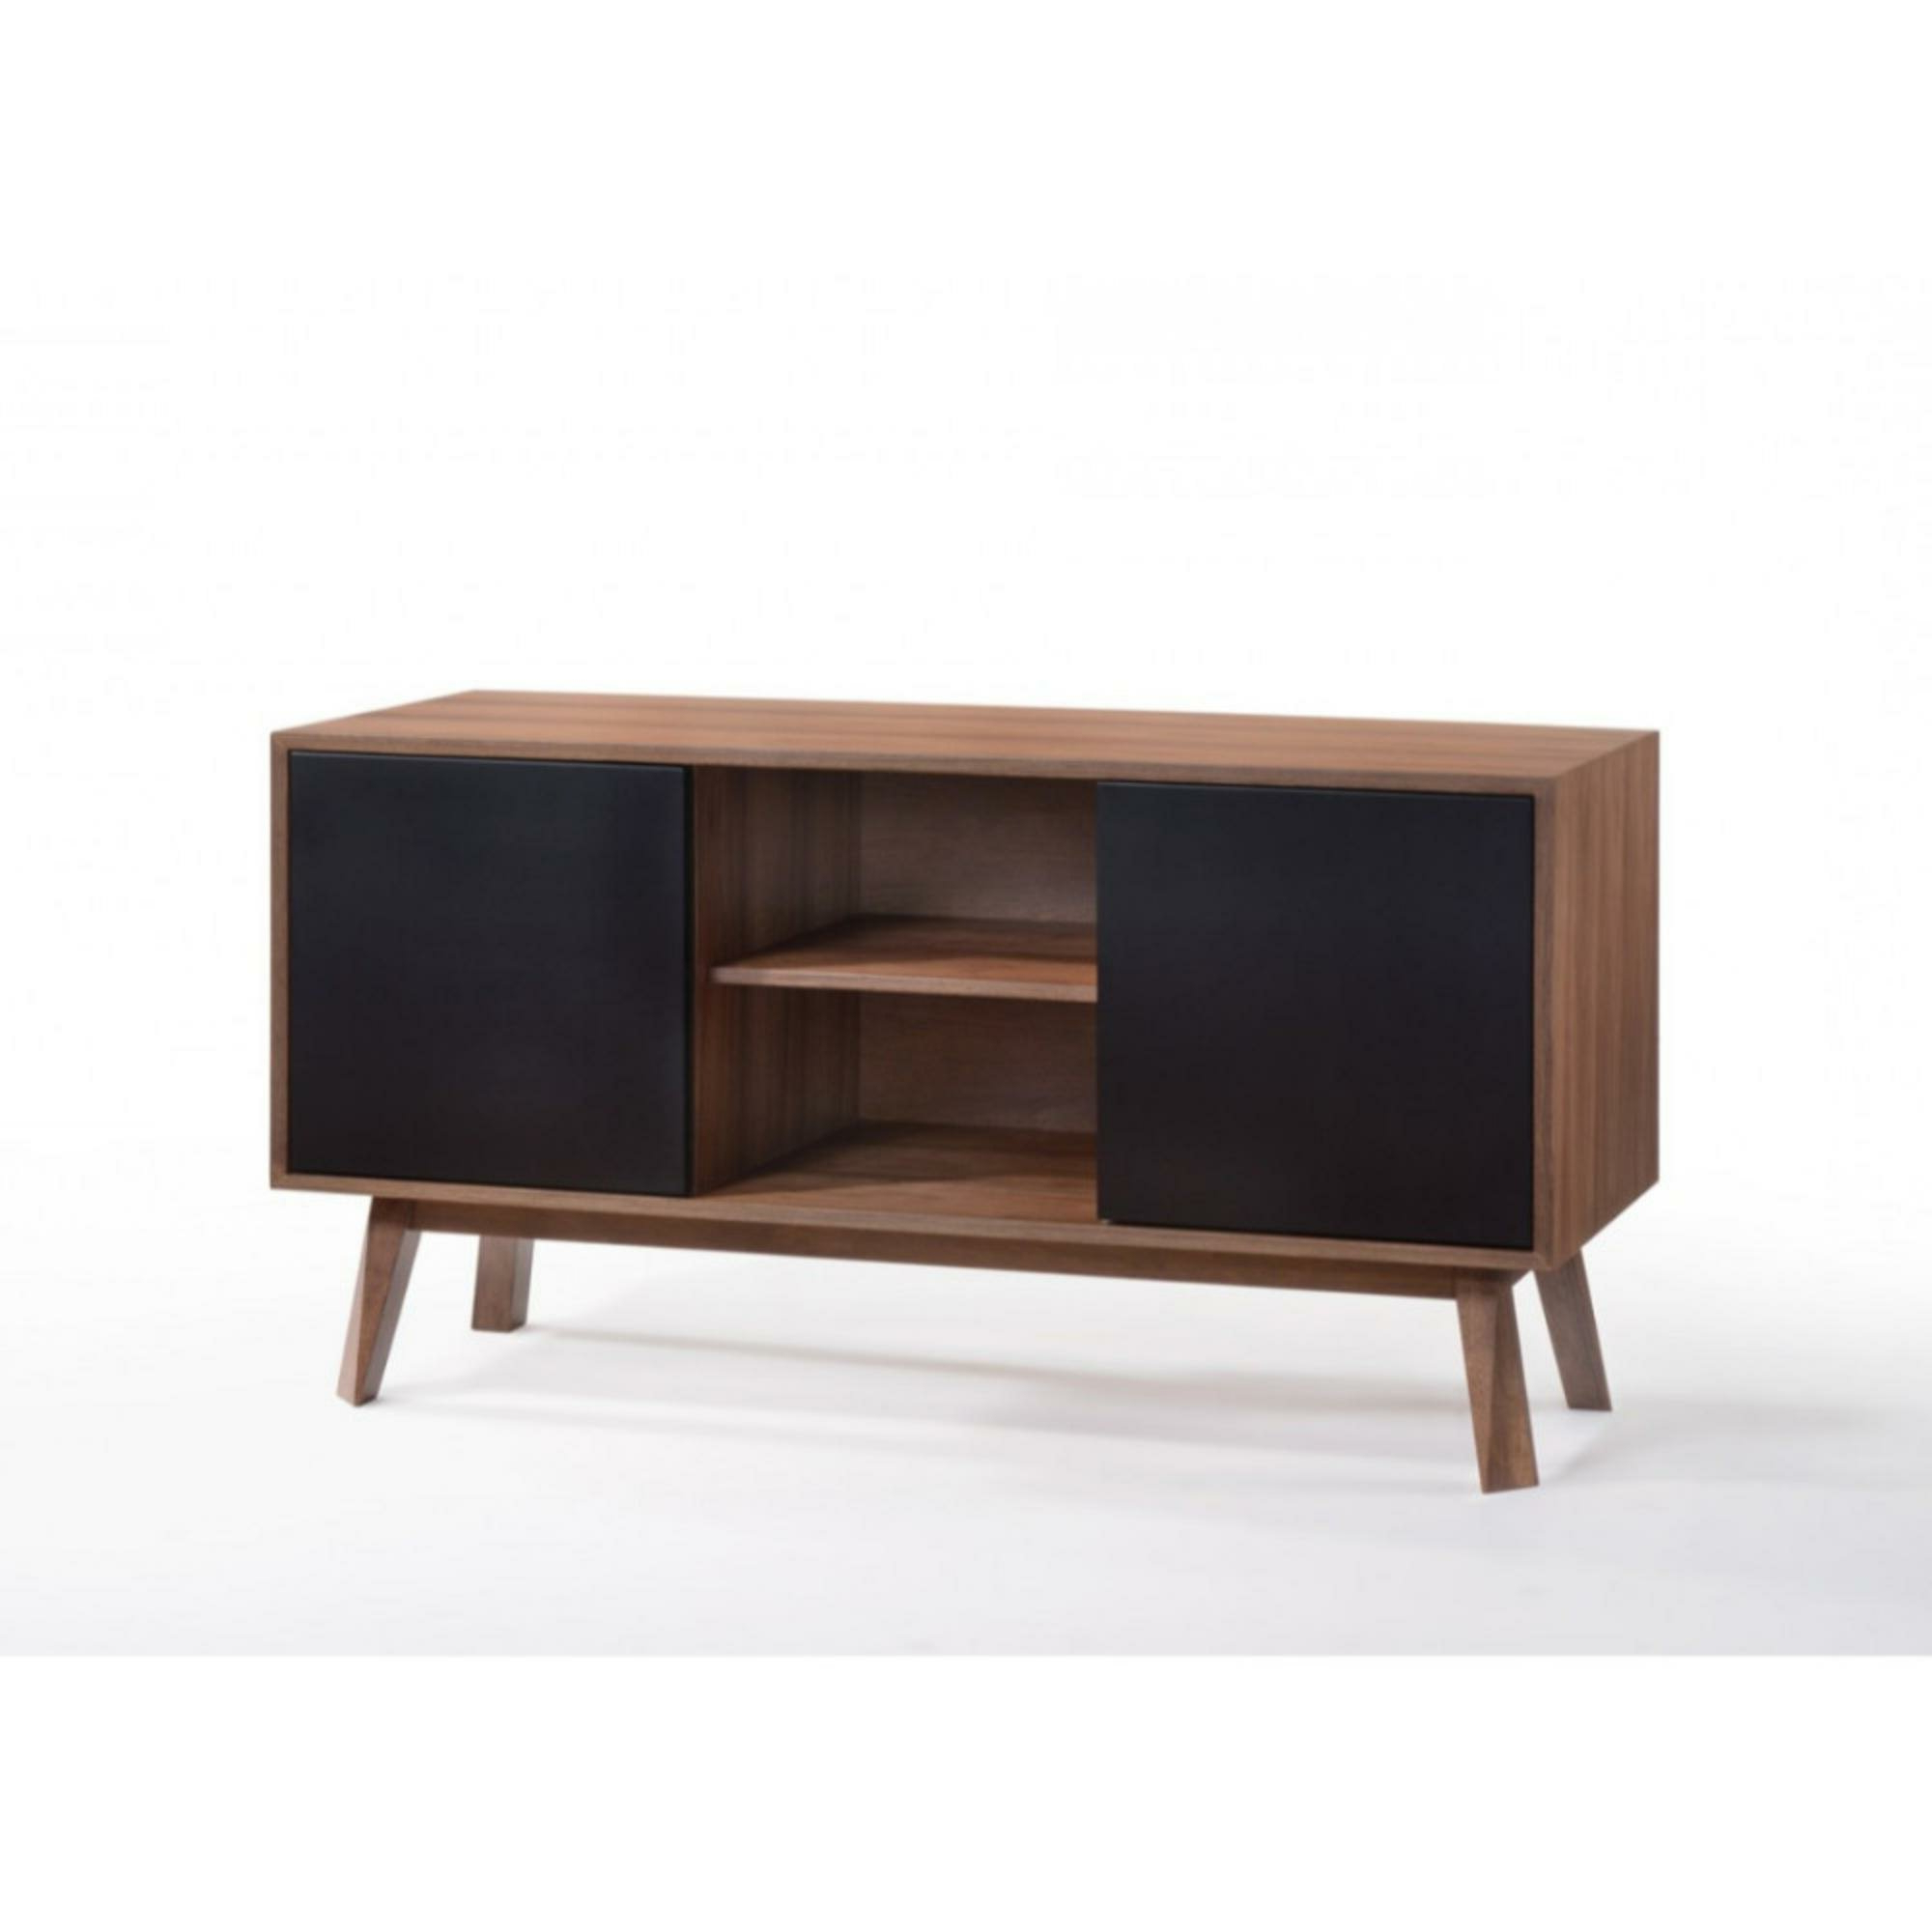 Gamboa Wooden Server Buffet Table Inside Contemporary Wooden Buffets With Four Open Compartments And Metal Tapered Legs (Gallery 6 of 20)